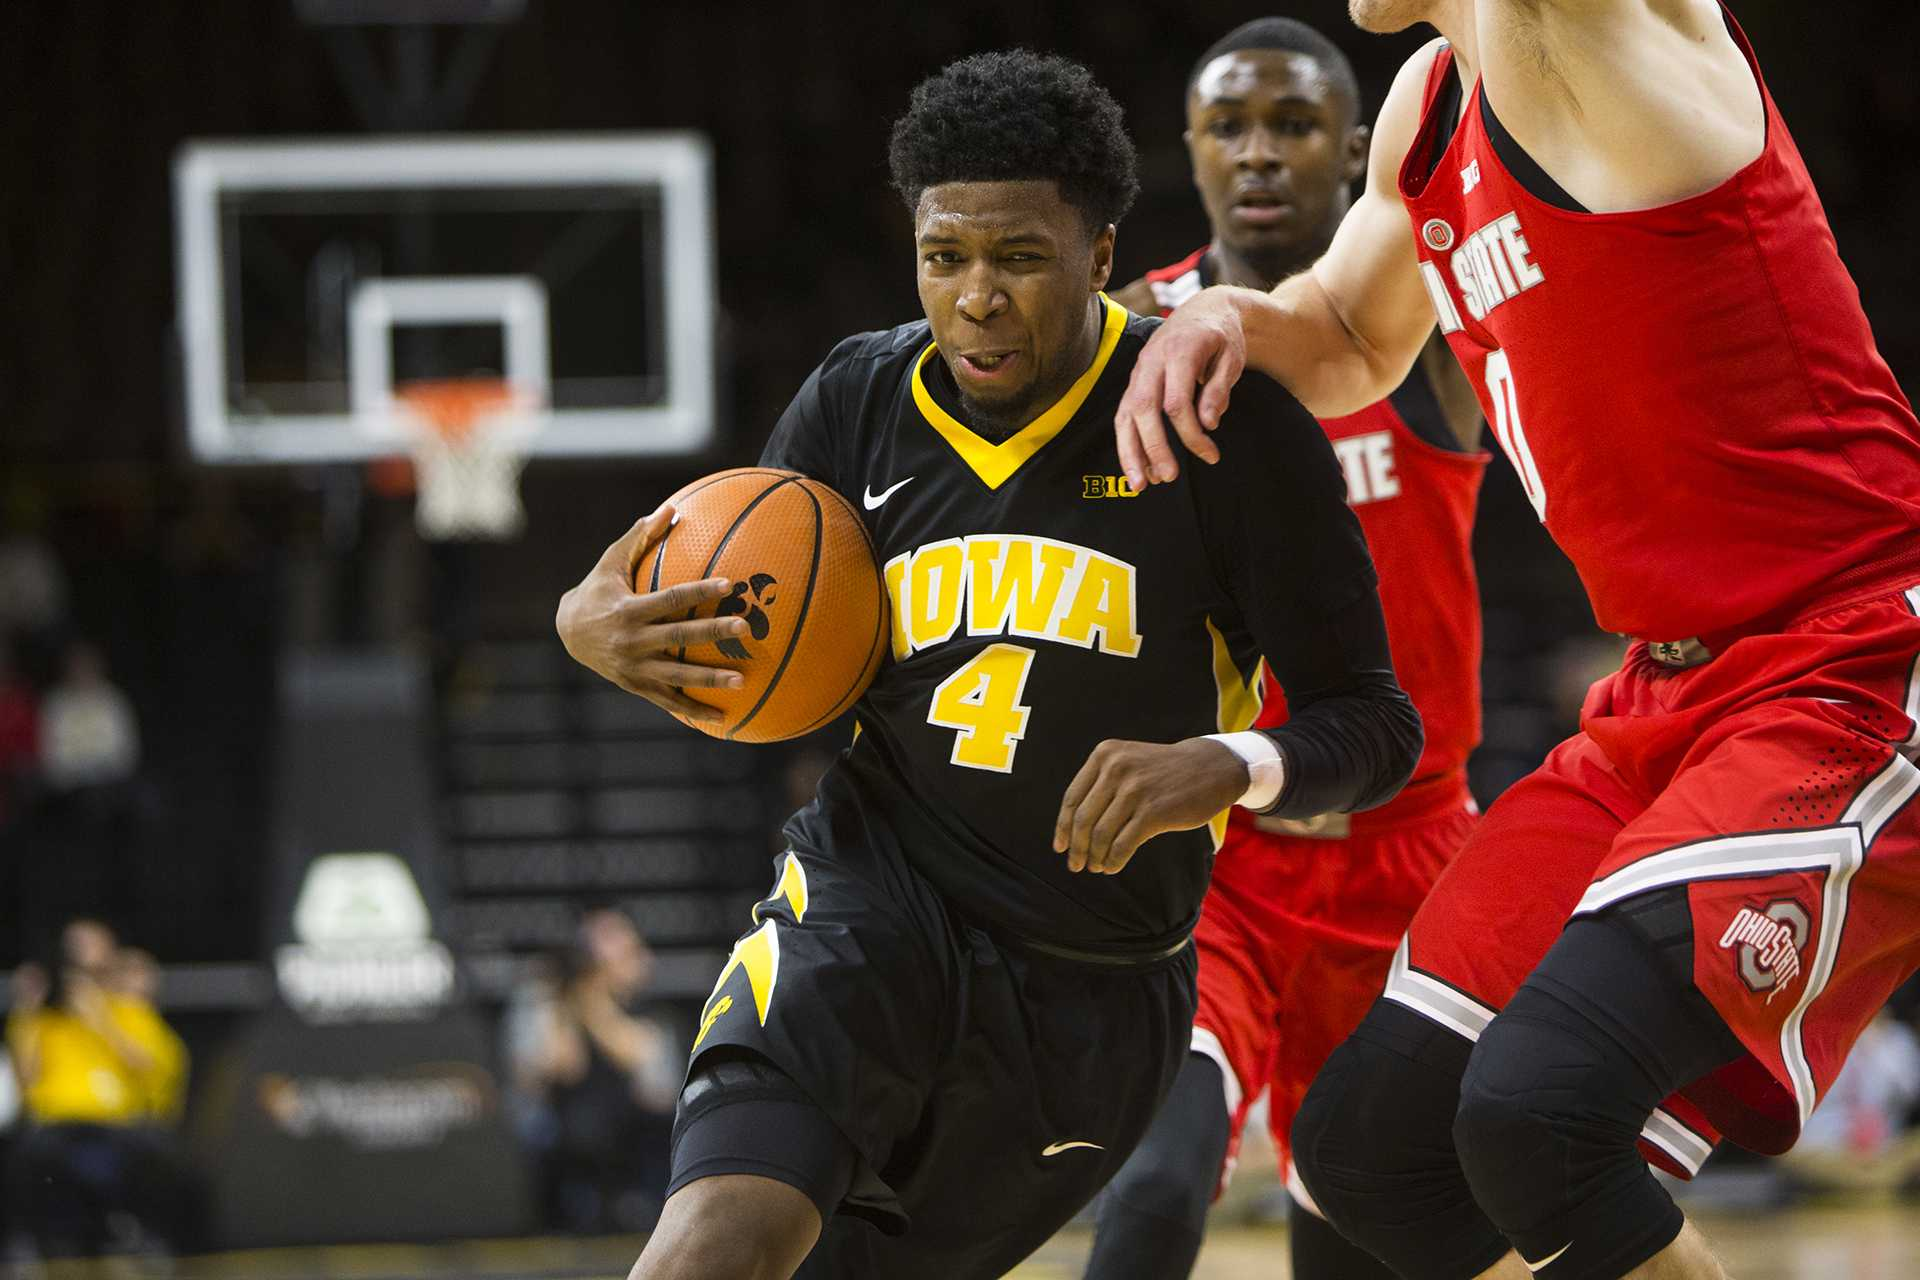 Iowa guard Isaiah Moss drives to the hoop during an Iowa/Ohio State men's basketball game in Carver-Hawkeye Arena on Thursday, Jan. 4, 2018. The Buckeyes defeated the Hawkeyes, 92-81. (Joseph Cress/The Daily Iowan)